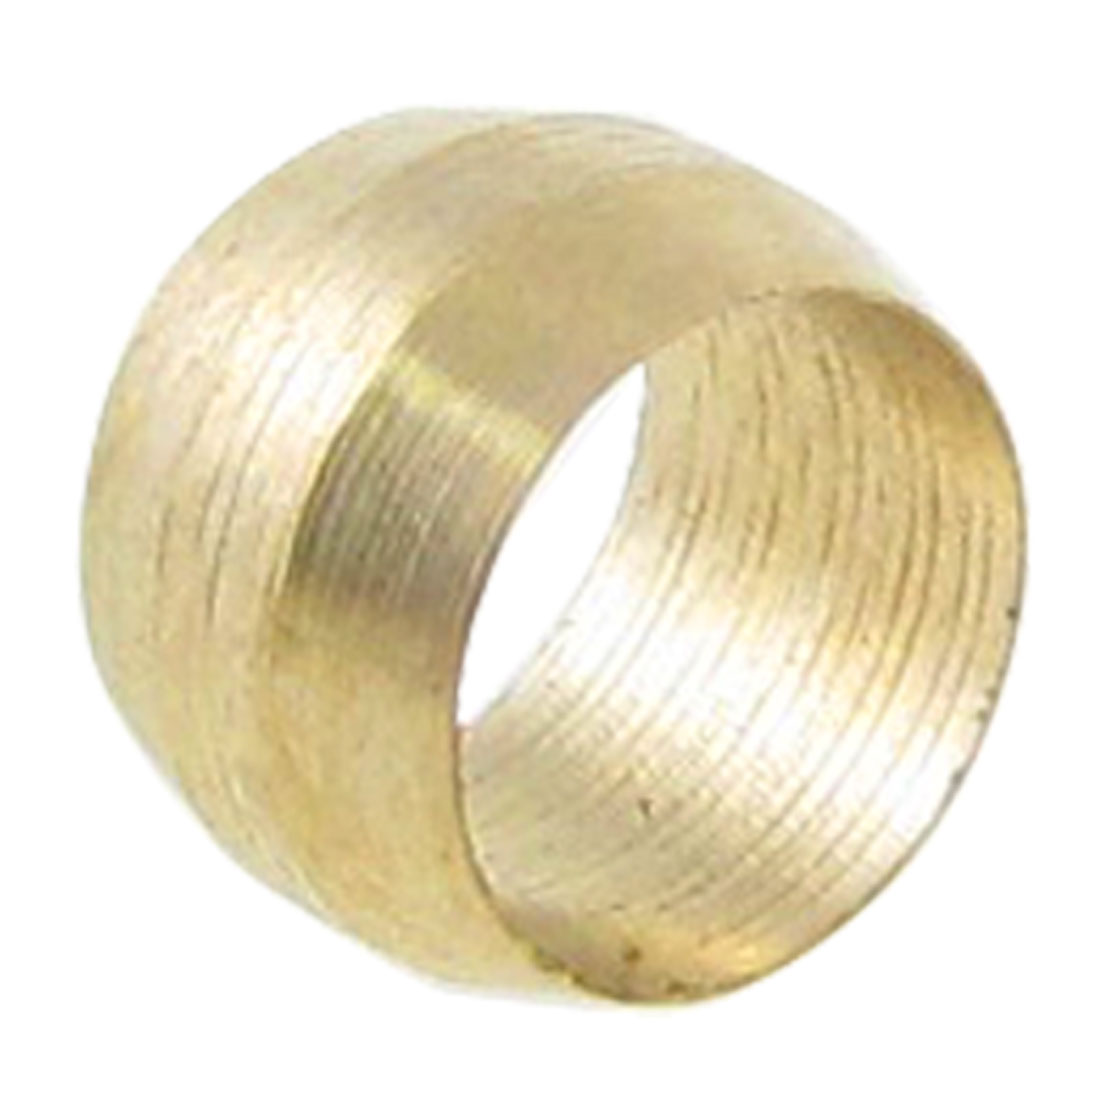 Gold-Tone-Brass-Compression-Sleeve-Ring-for-15-64-Diameter-Tubing